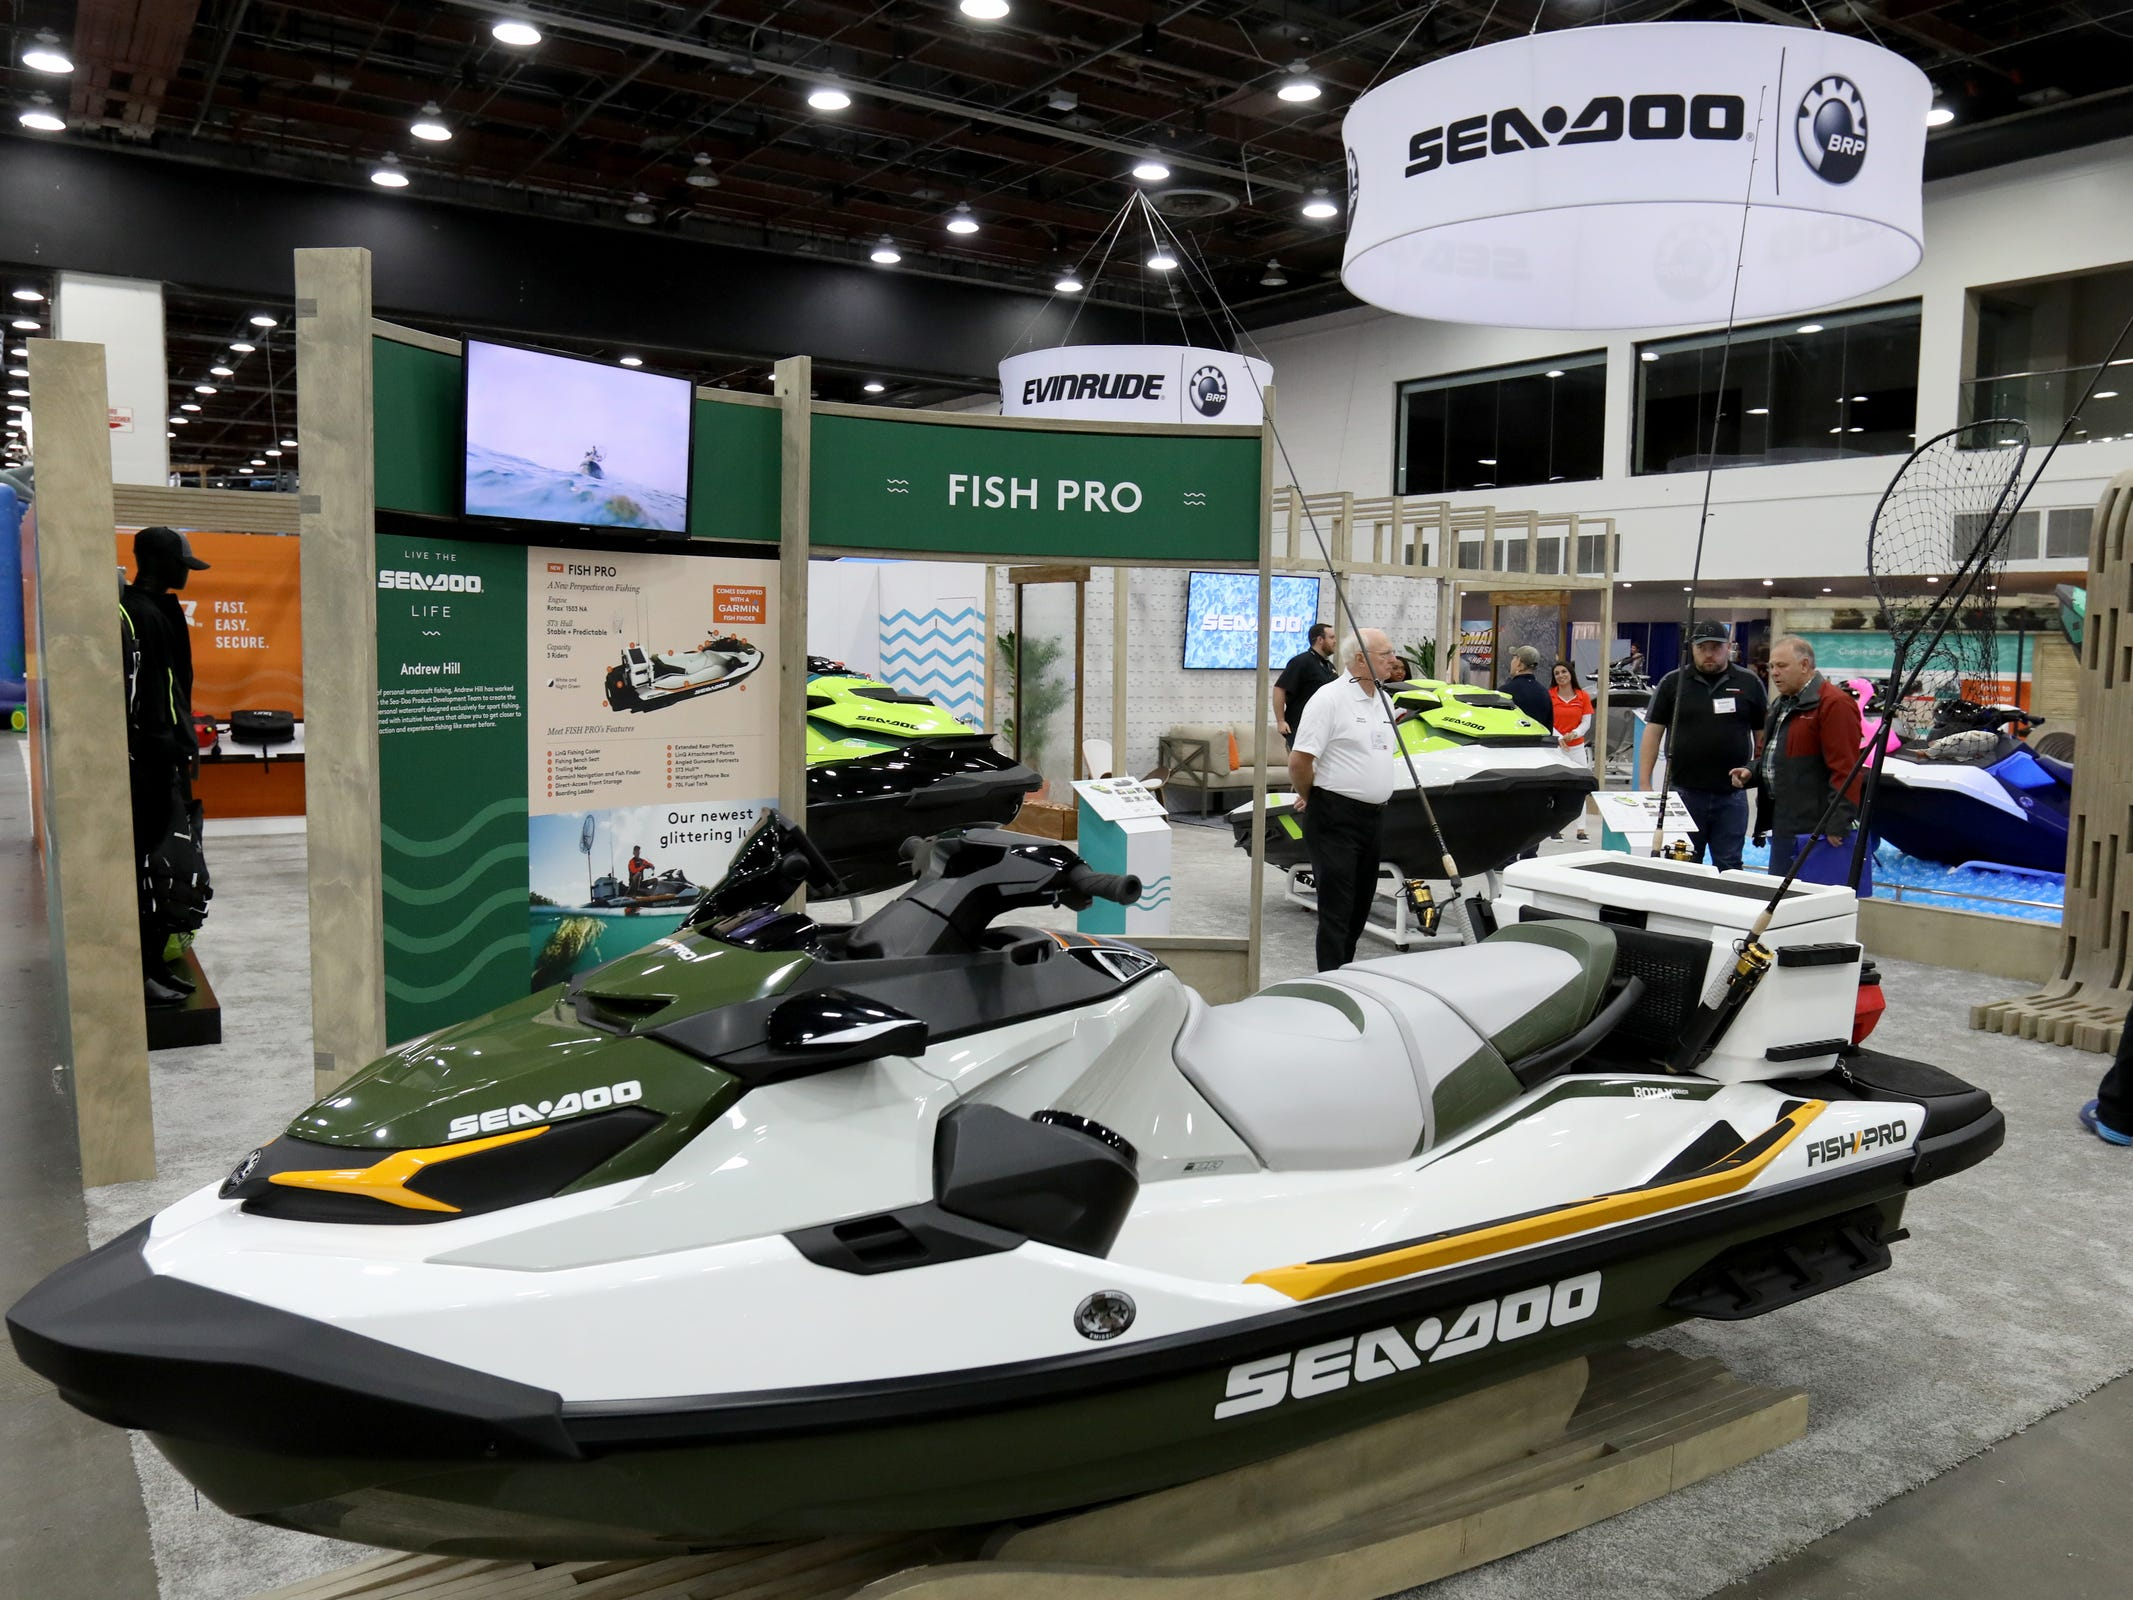 One of the newest personal watercraft on display at the Detroit Boat Show at Cobo Center in Detroit on Saturday, February 16, 2019 was See-Doo's new Fish Pro jet ski that has been outfitted for fishing. .